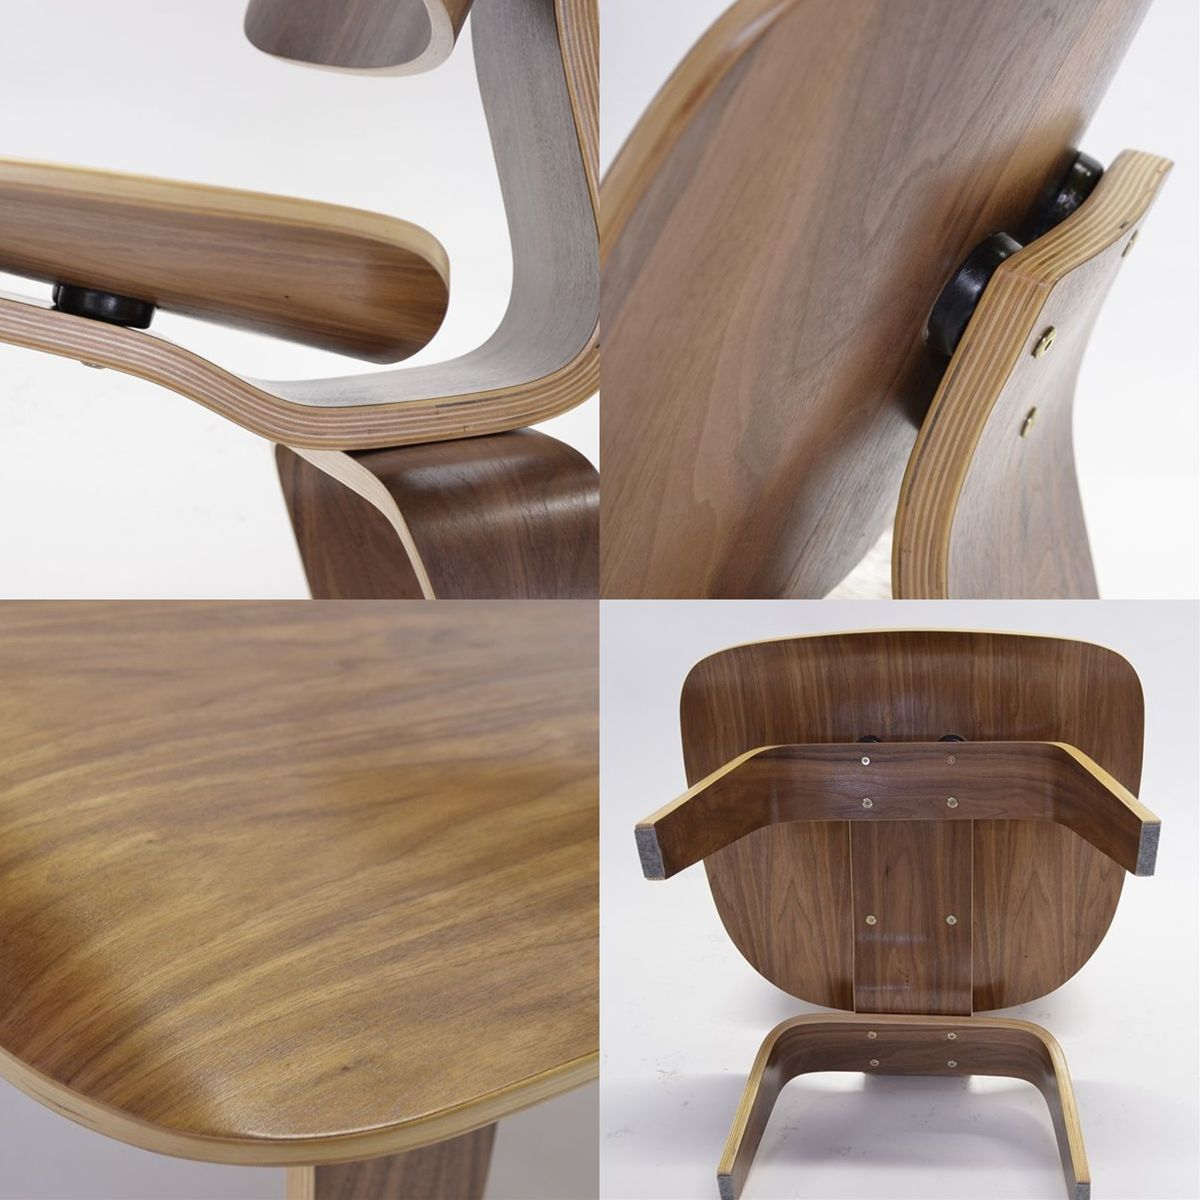 Eames molded plywood chair living room - Eames Lcw Lounge Chair Wood Walnut